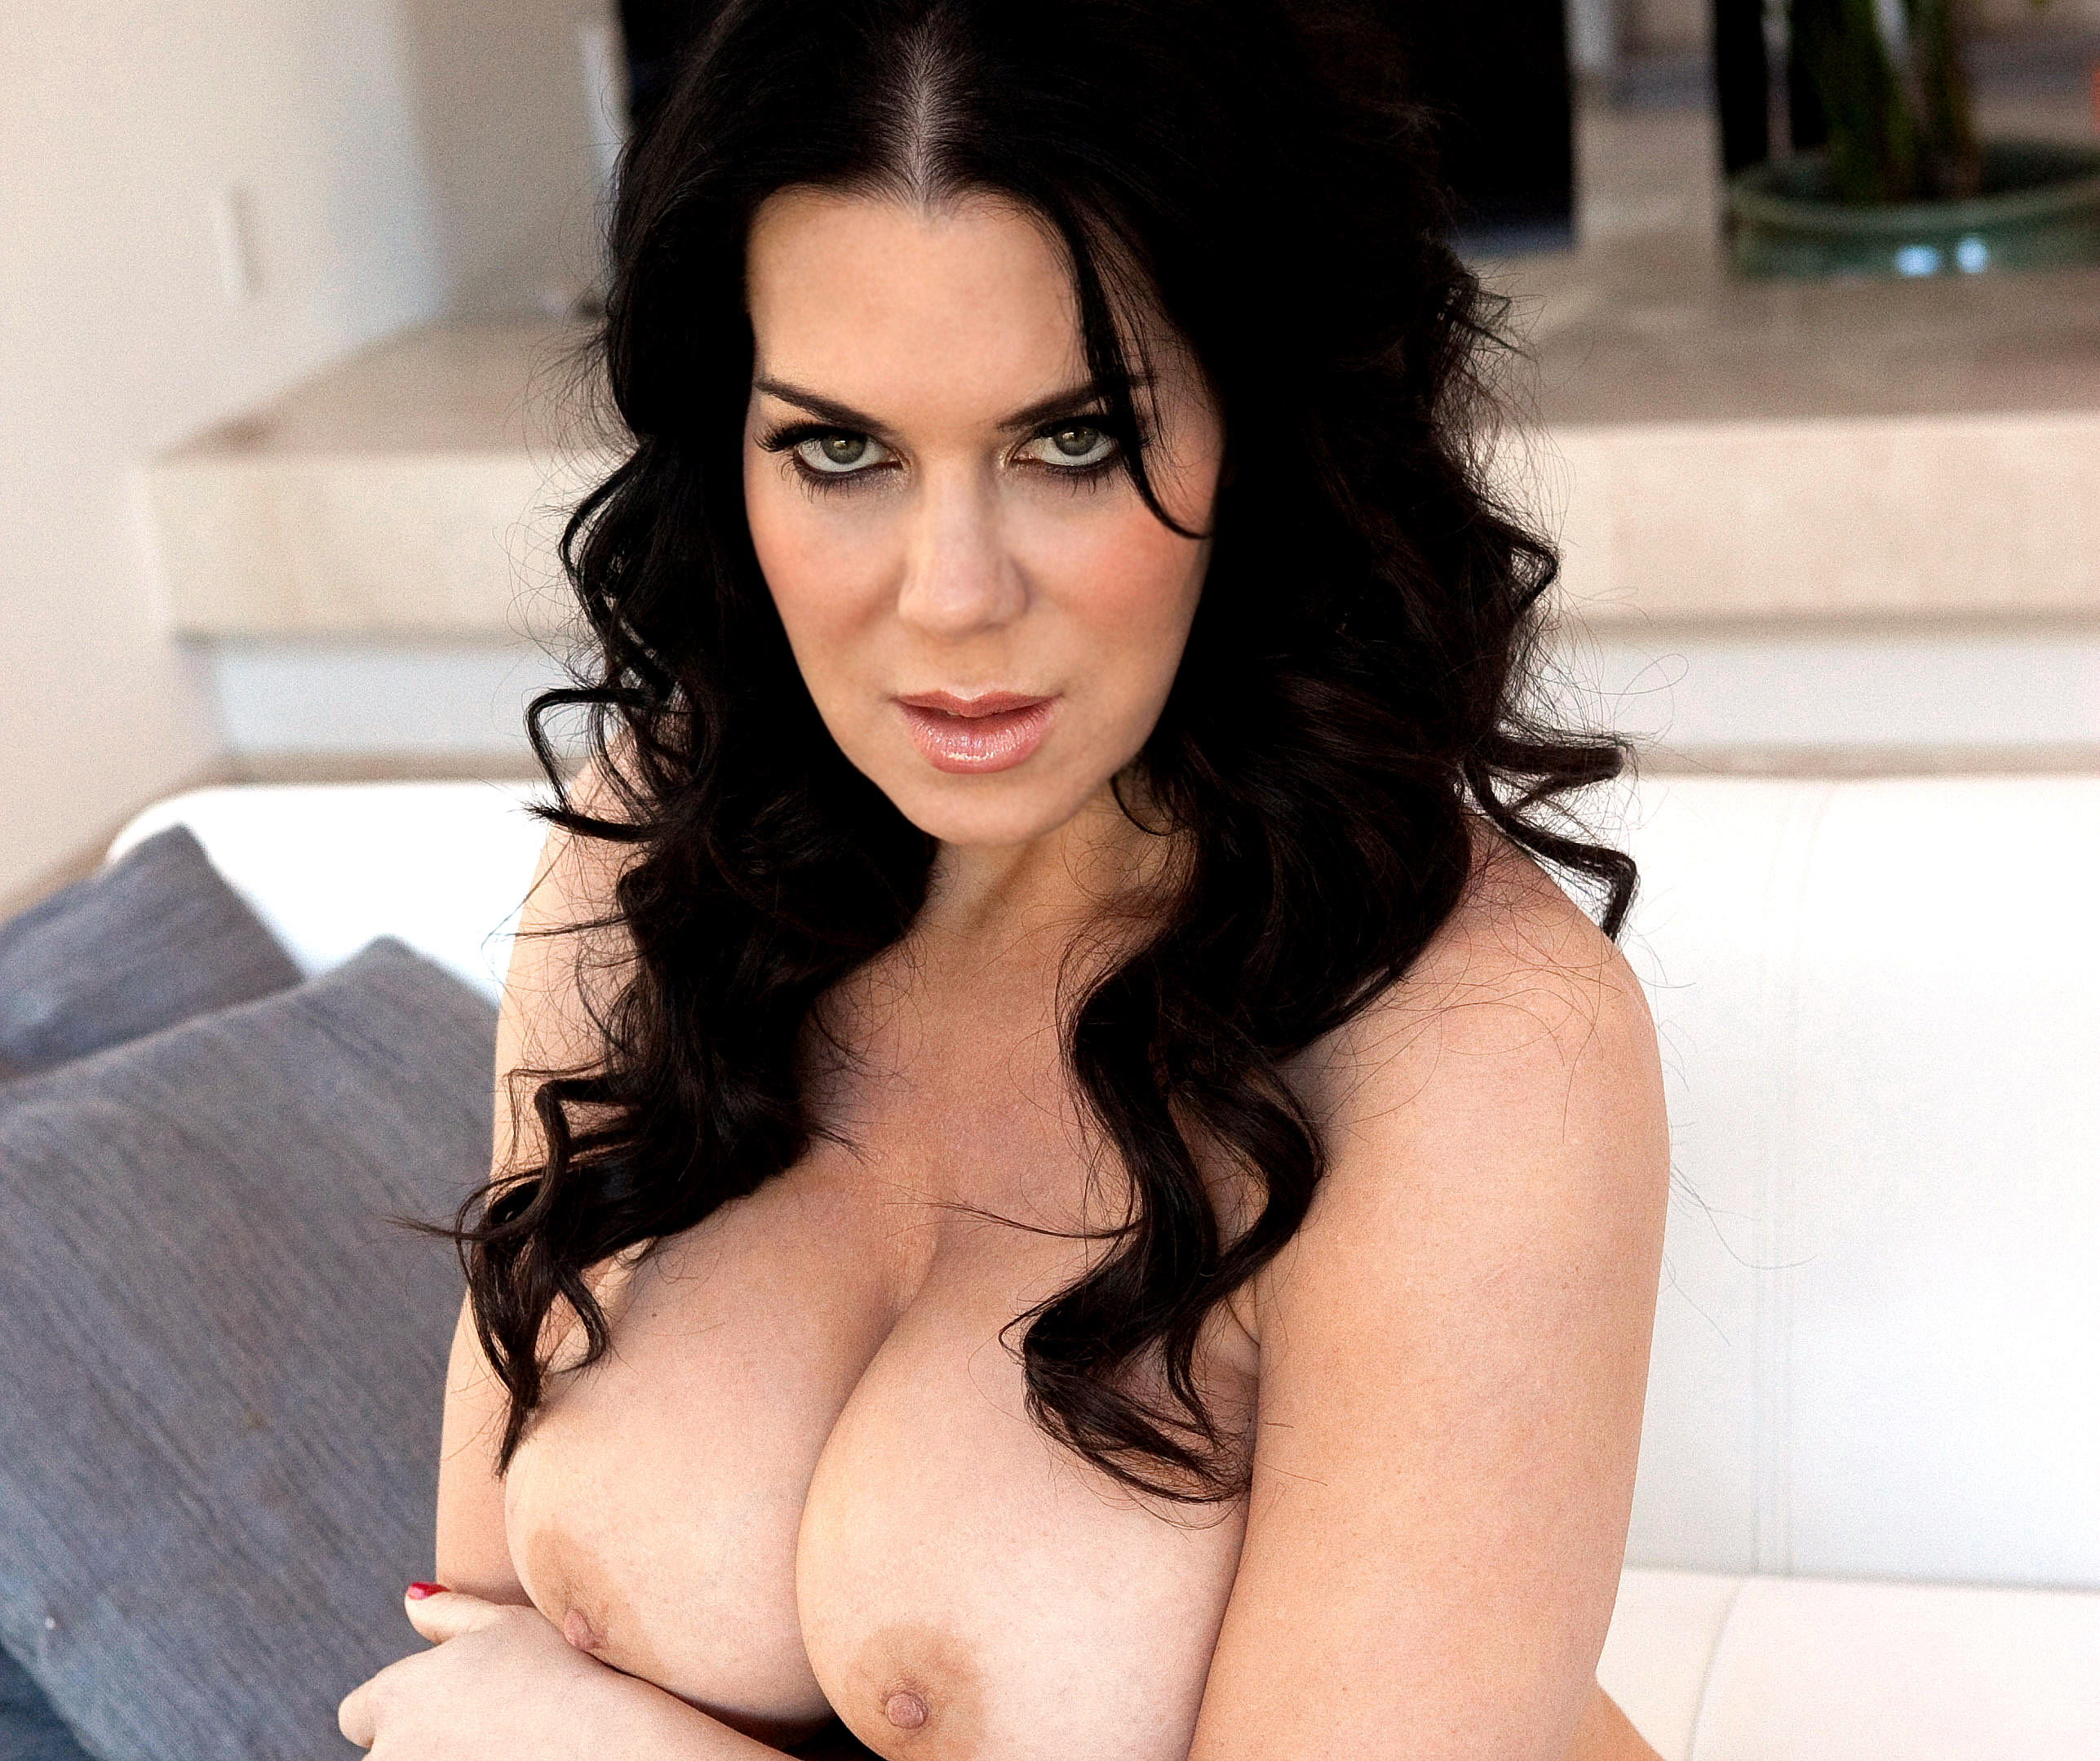 Chyna sex tape download free